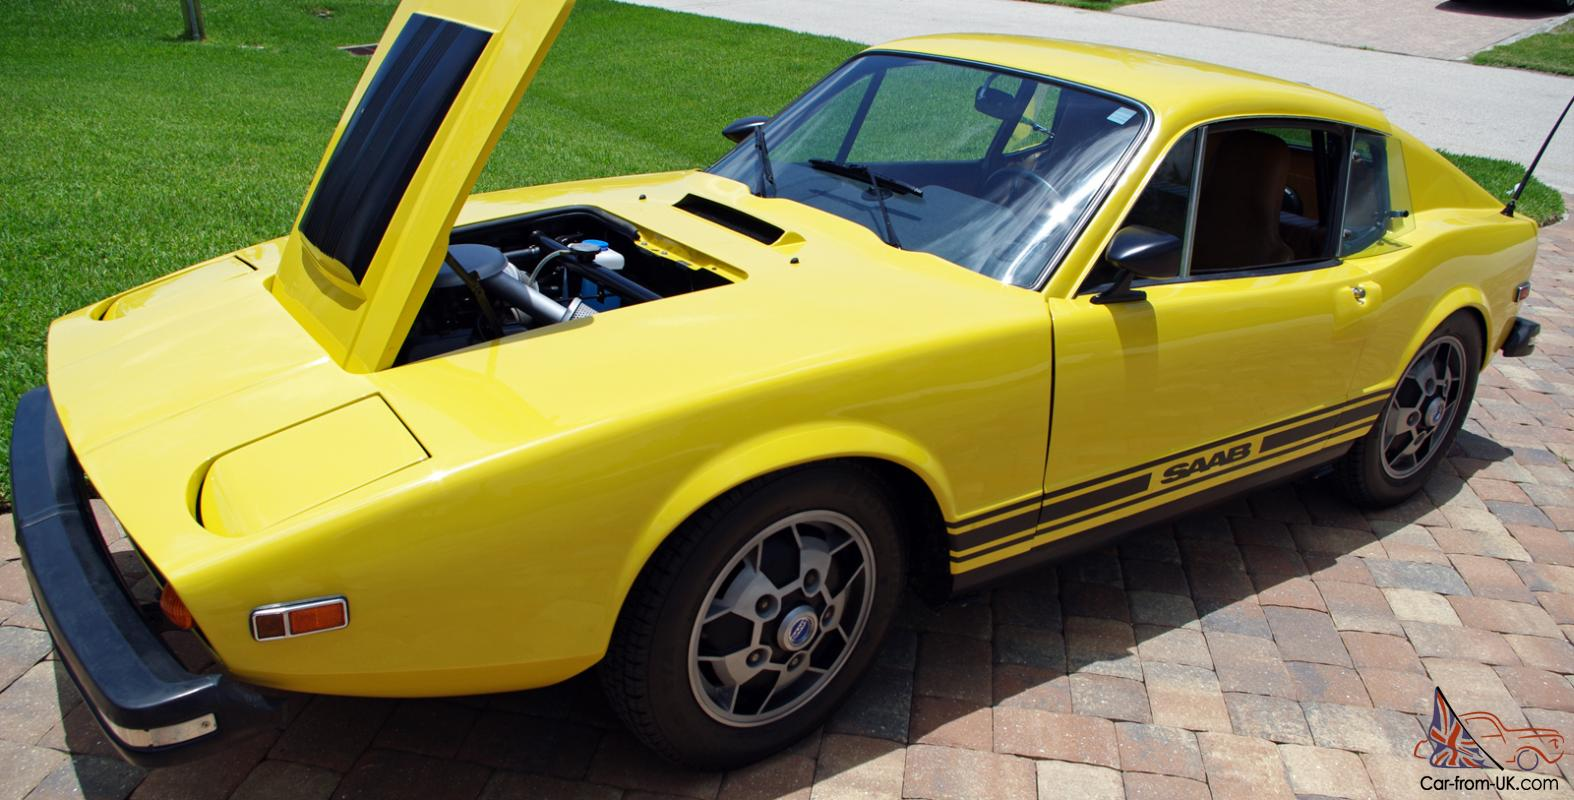 1974 Saab Sonett III Vintage Classic Sports Car for sale